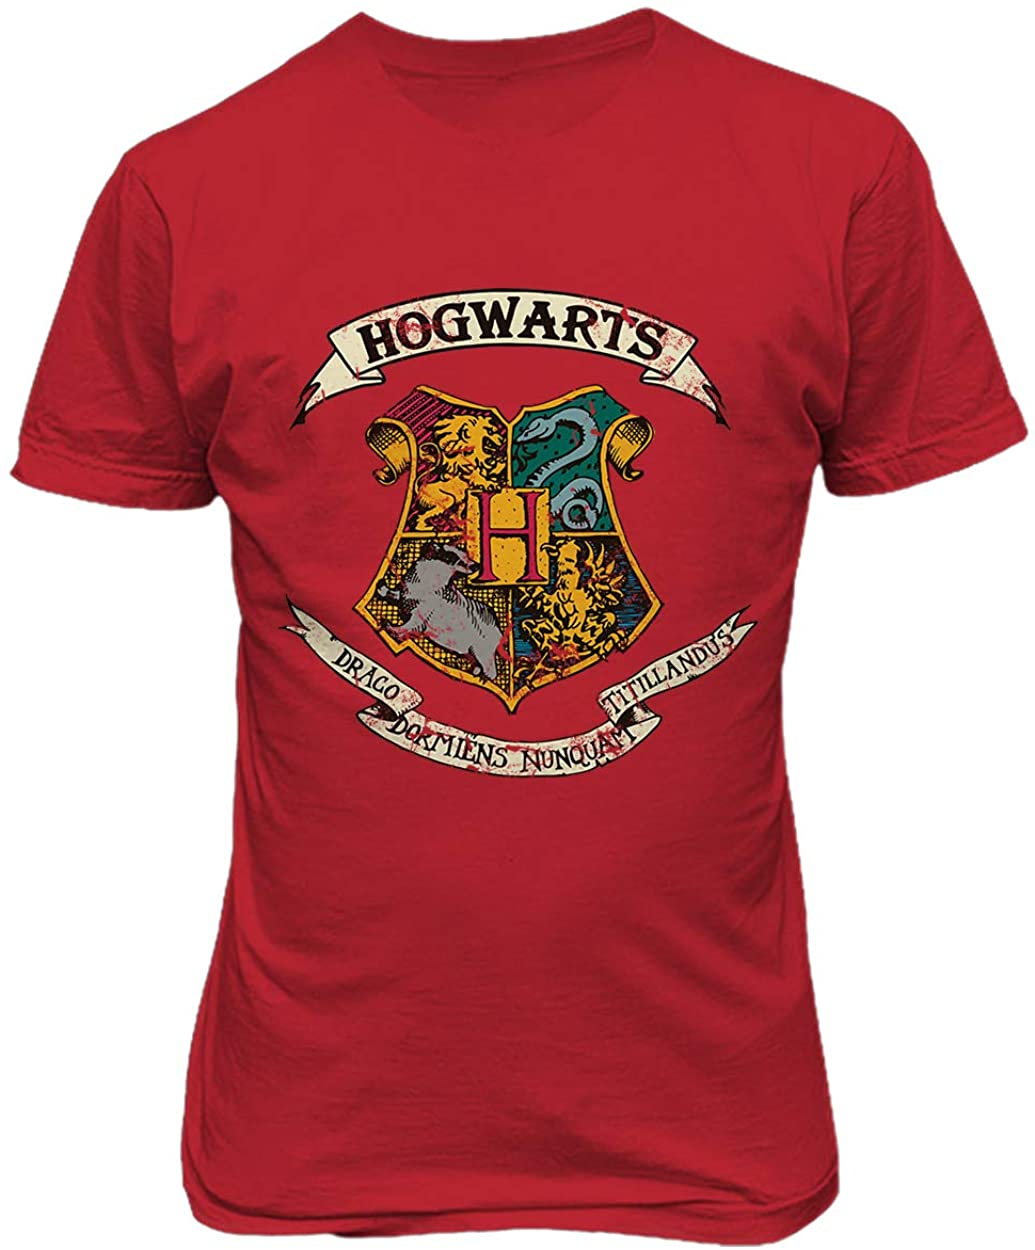 RIVEBELLA New Graphic Shirt Hogwarts Novelty Tee Harry Men's T-Shirt